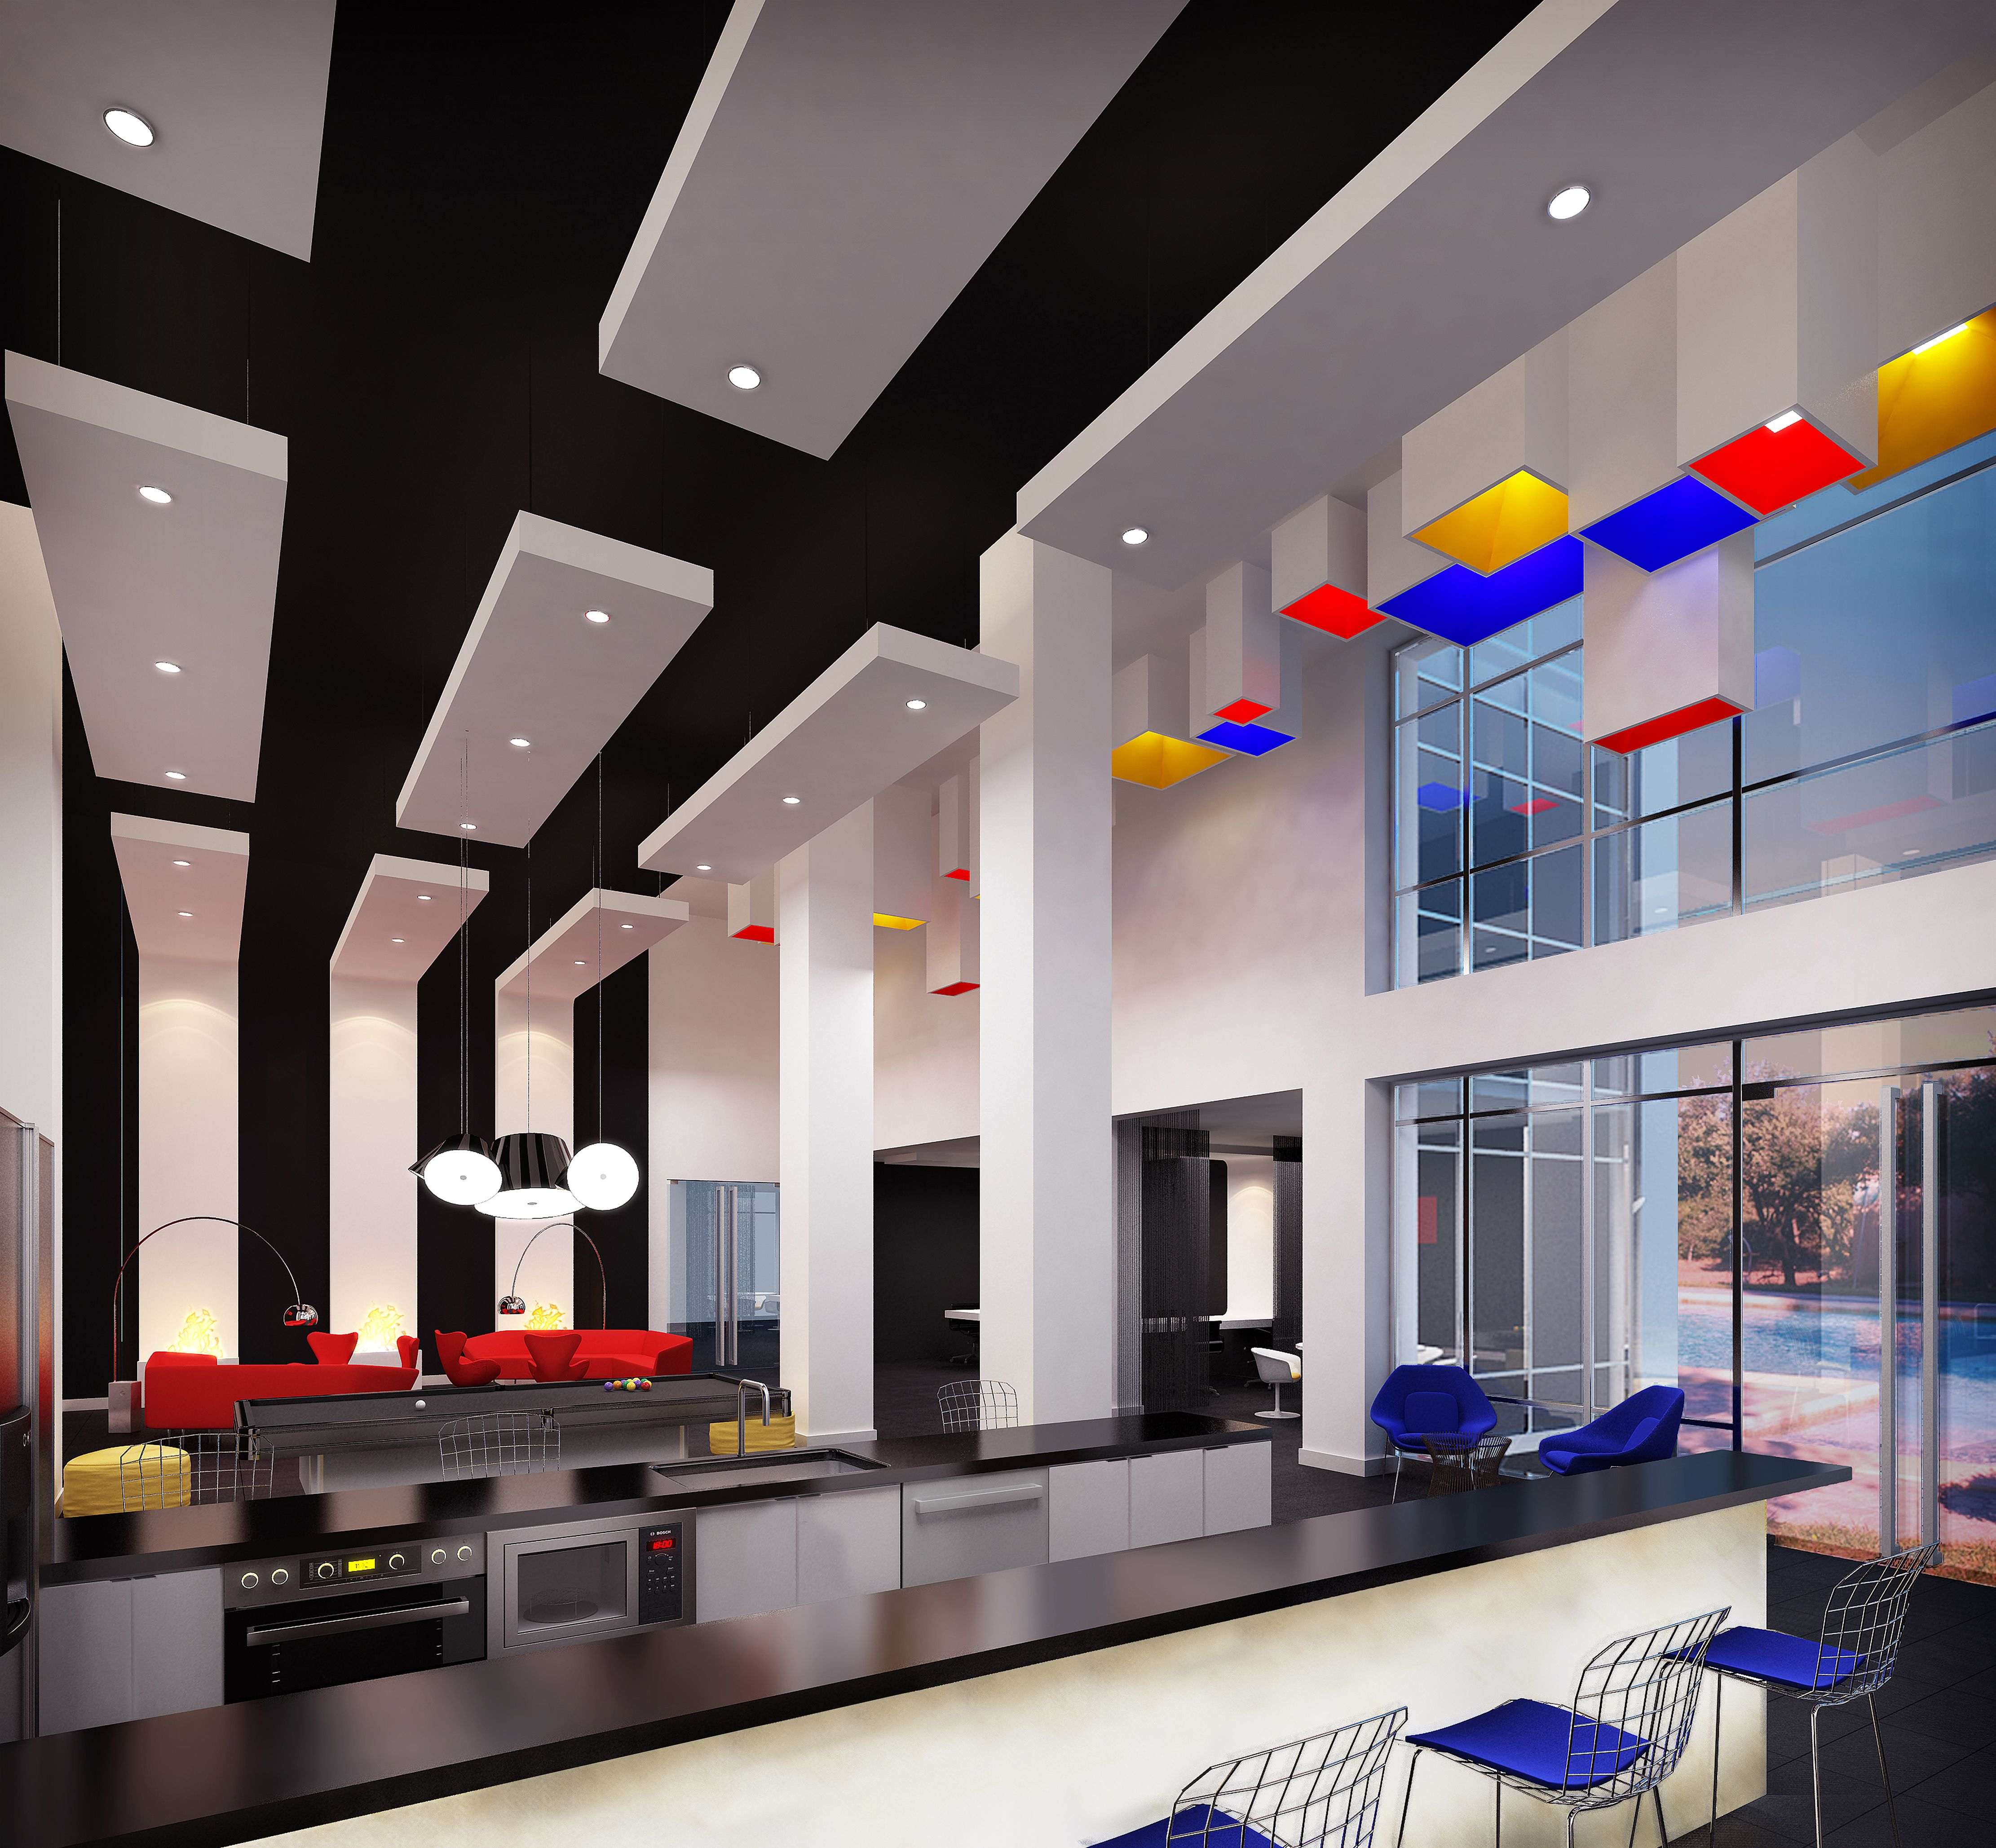 Arts Clubhouse Interior | De Stijl movement | B2 Architecture